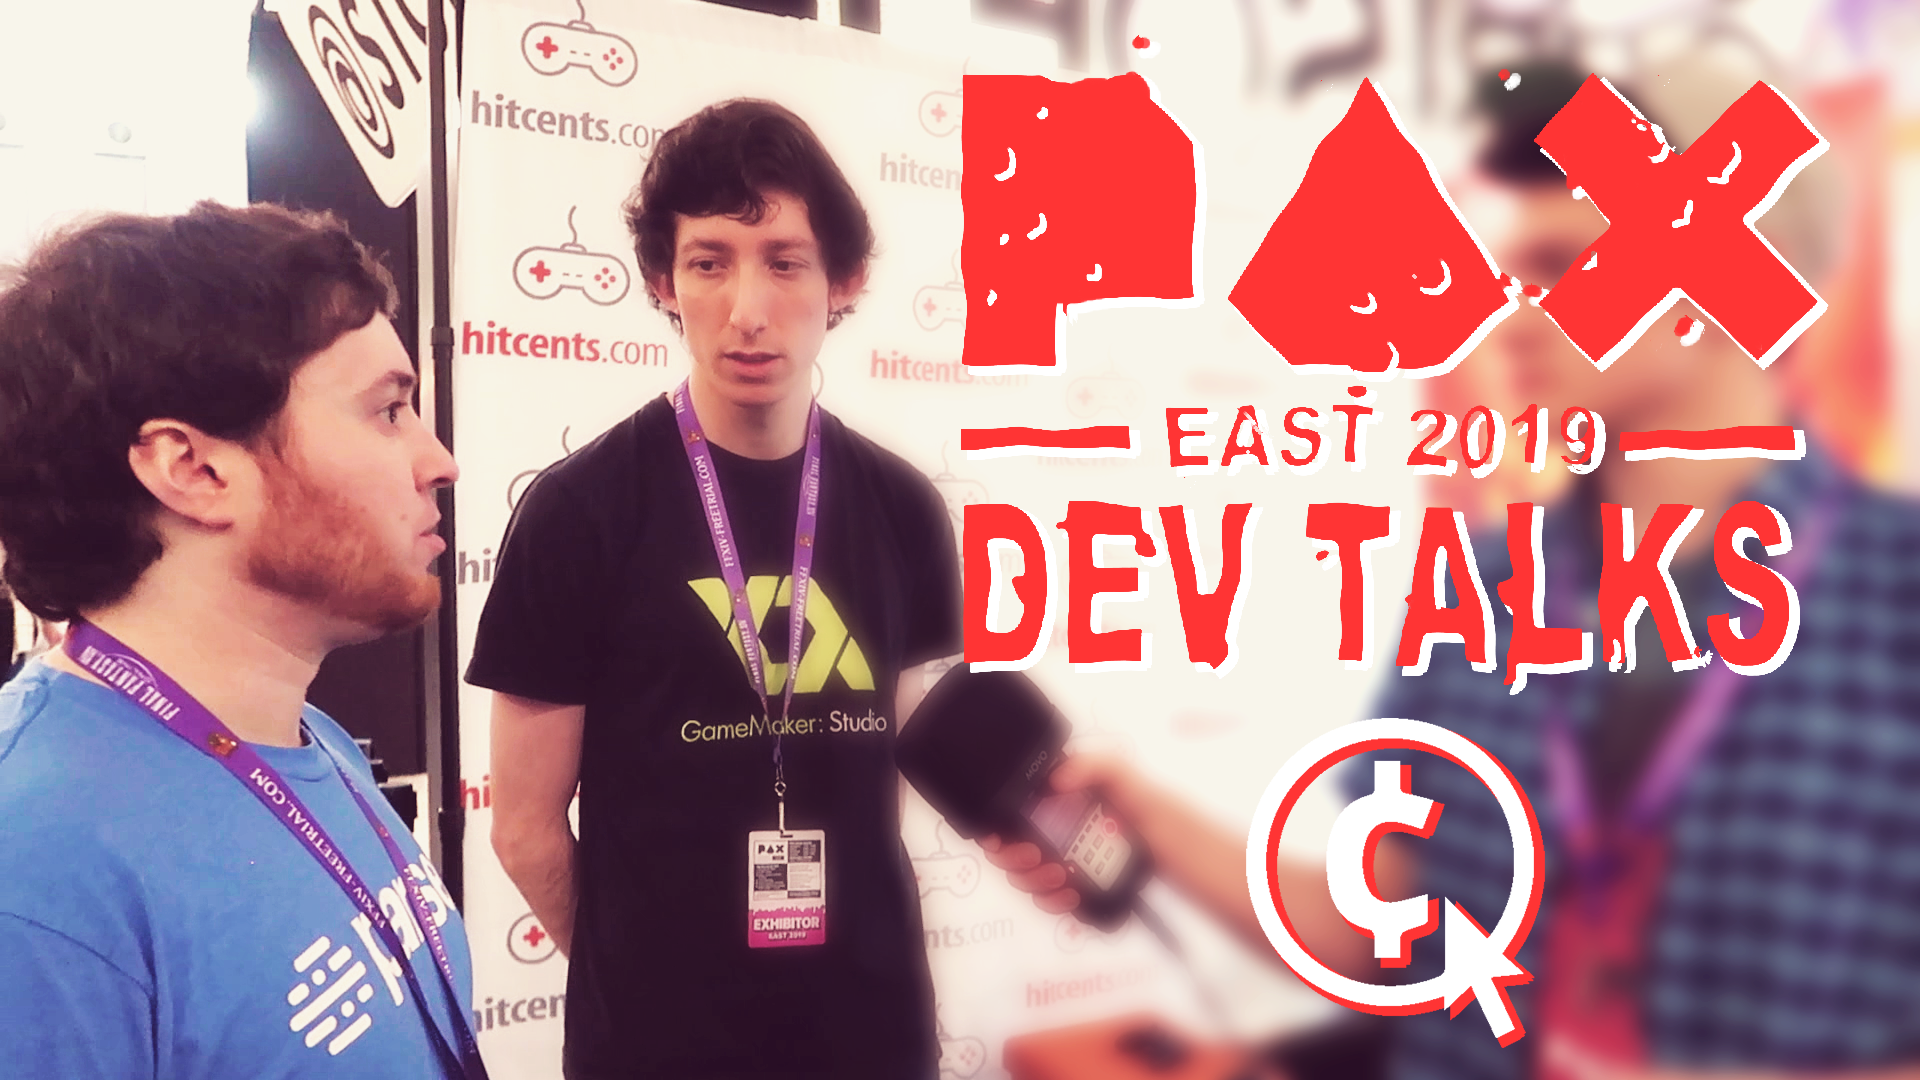 GARNERING THE ATTENTION OF GAMERS AT A CON - Article & Video Interview